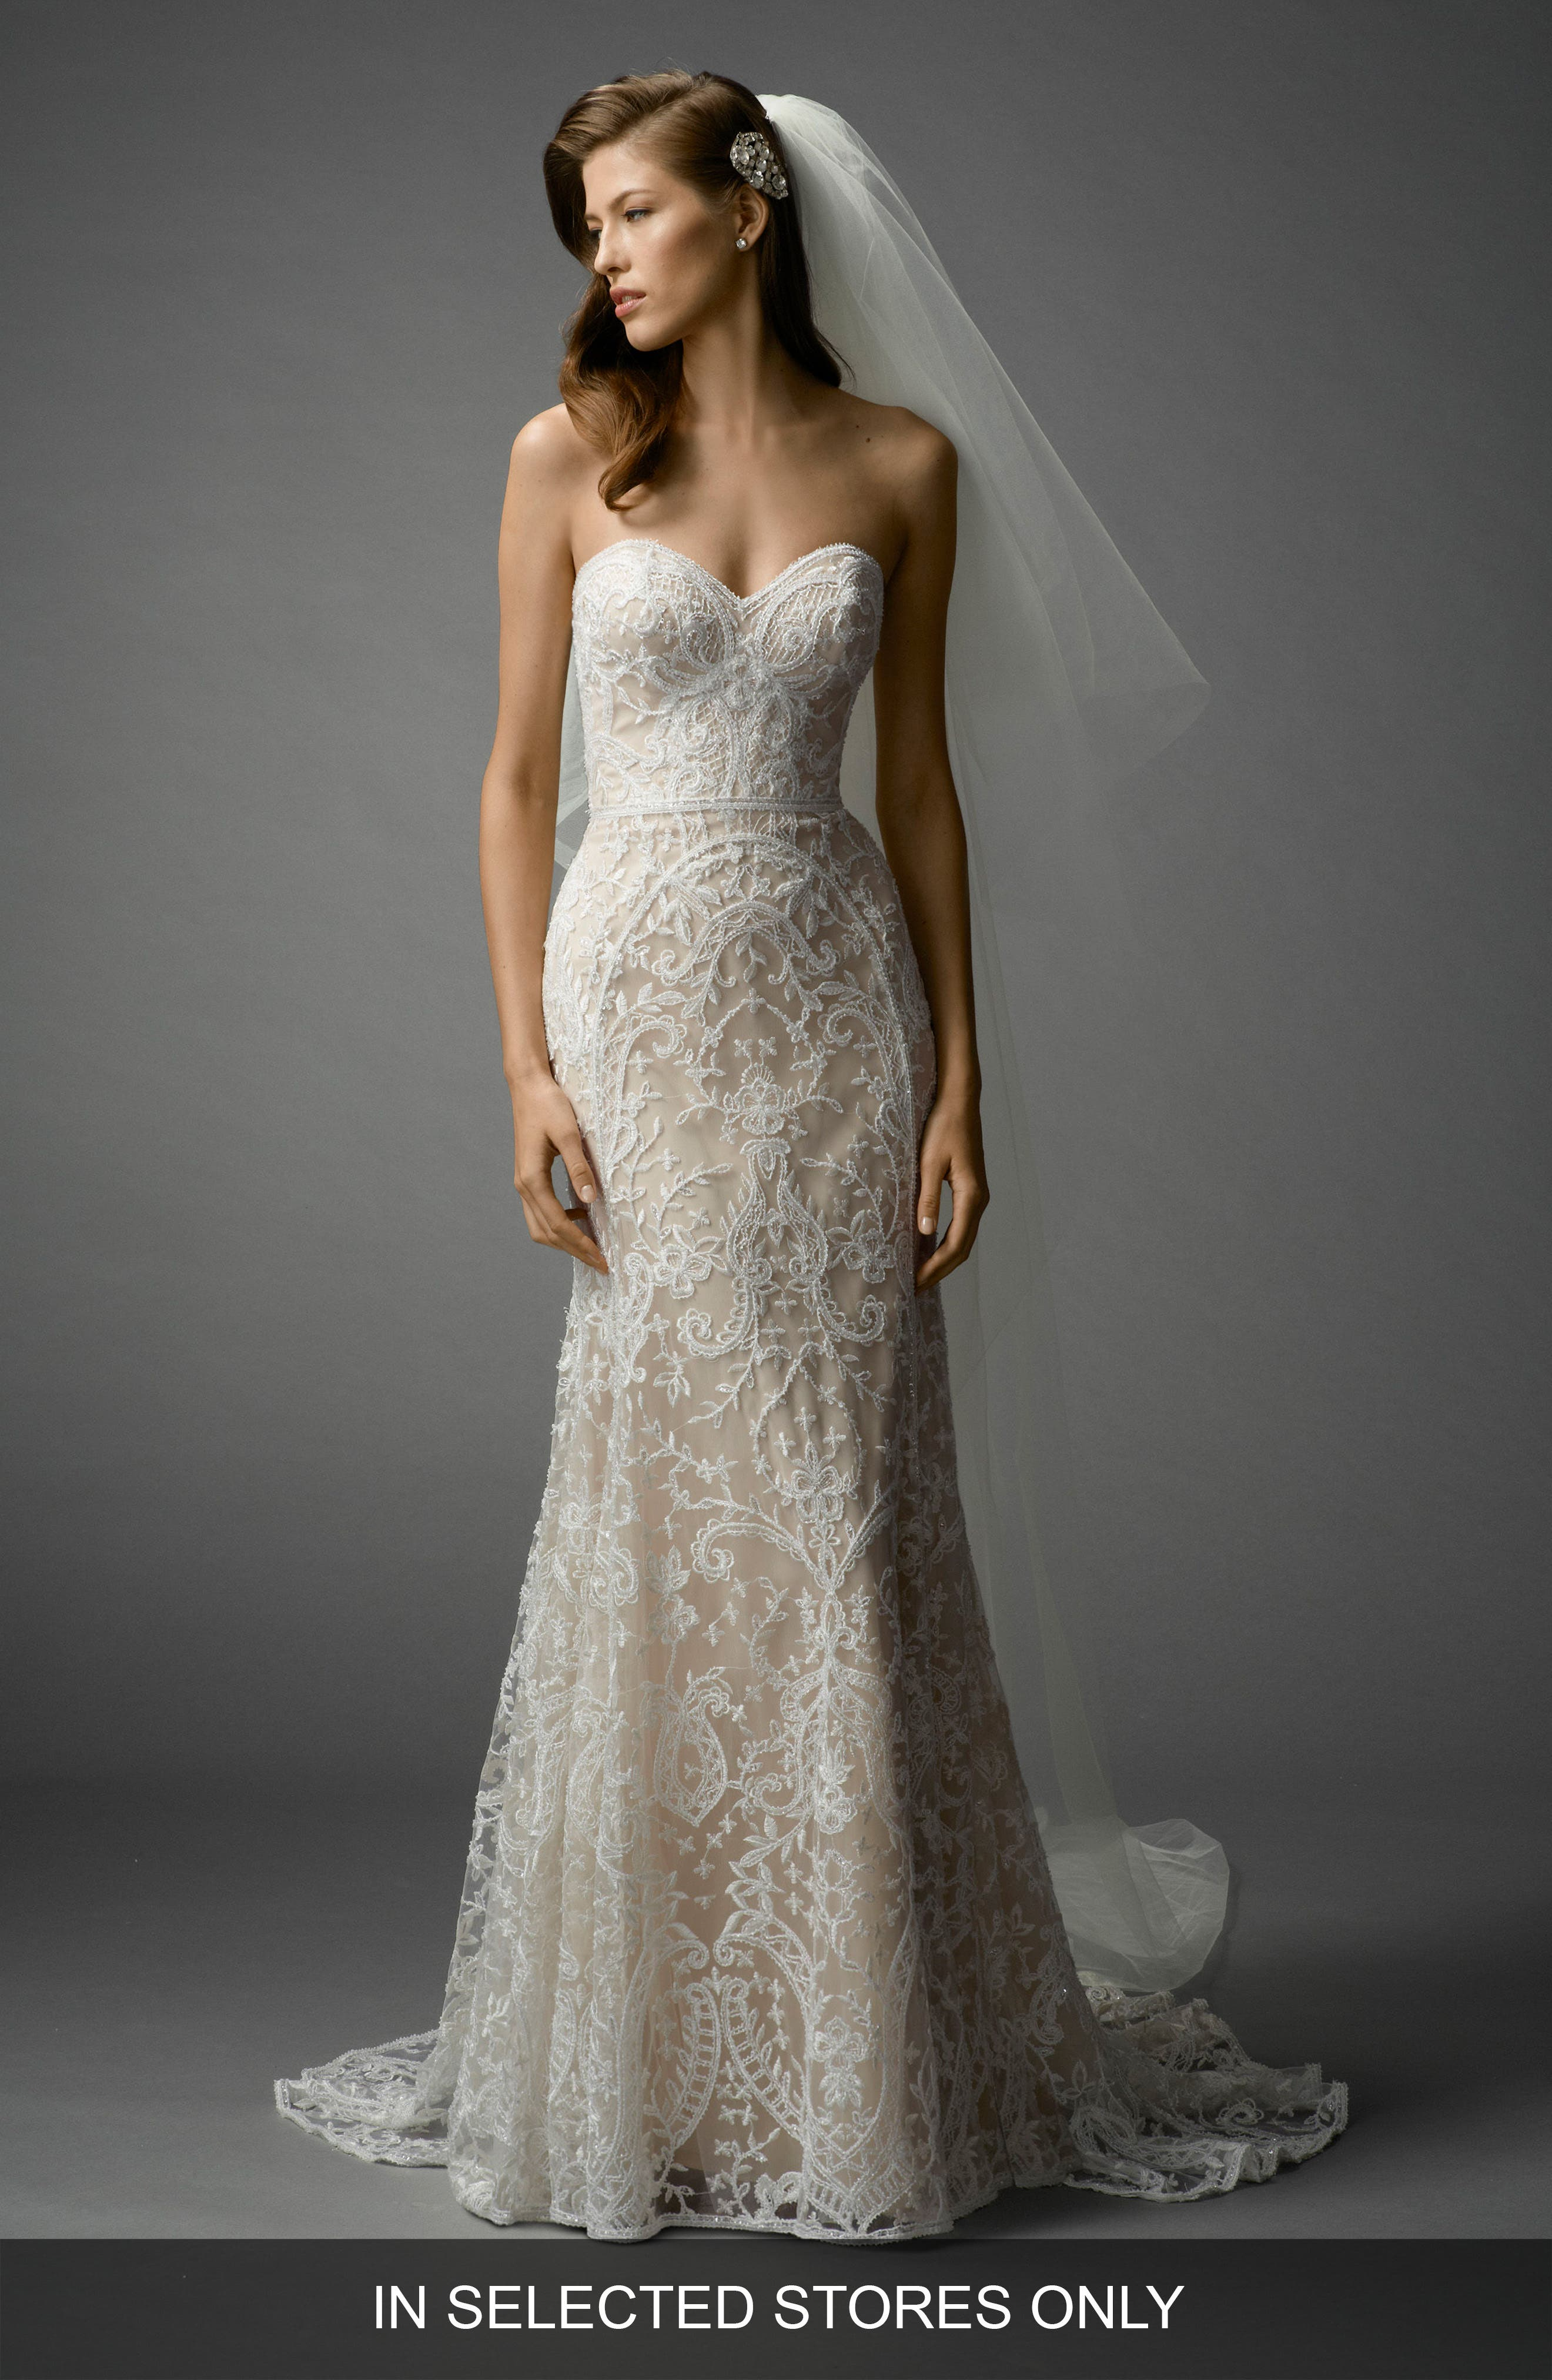 Nyra Embroidered Strapless A-Line Gown,                             Main thumbnail 1, color,                             Ivory/Almond